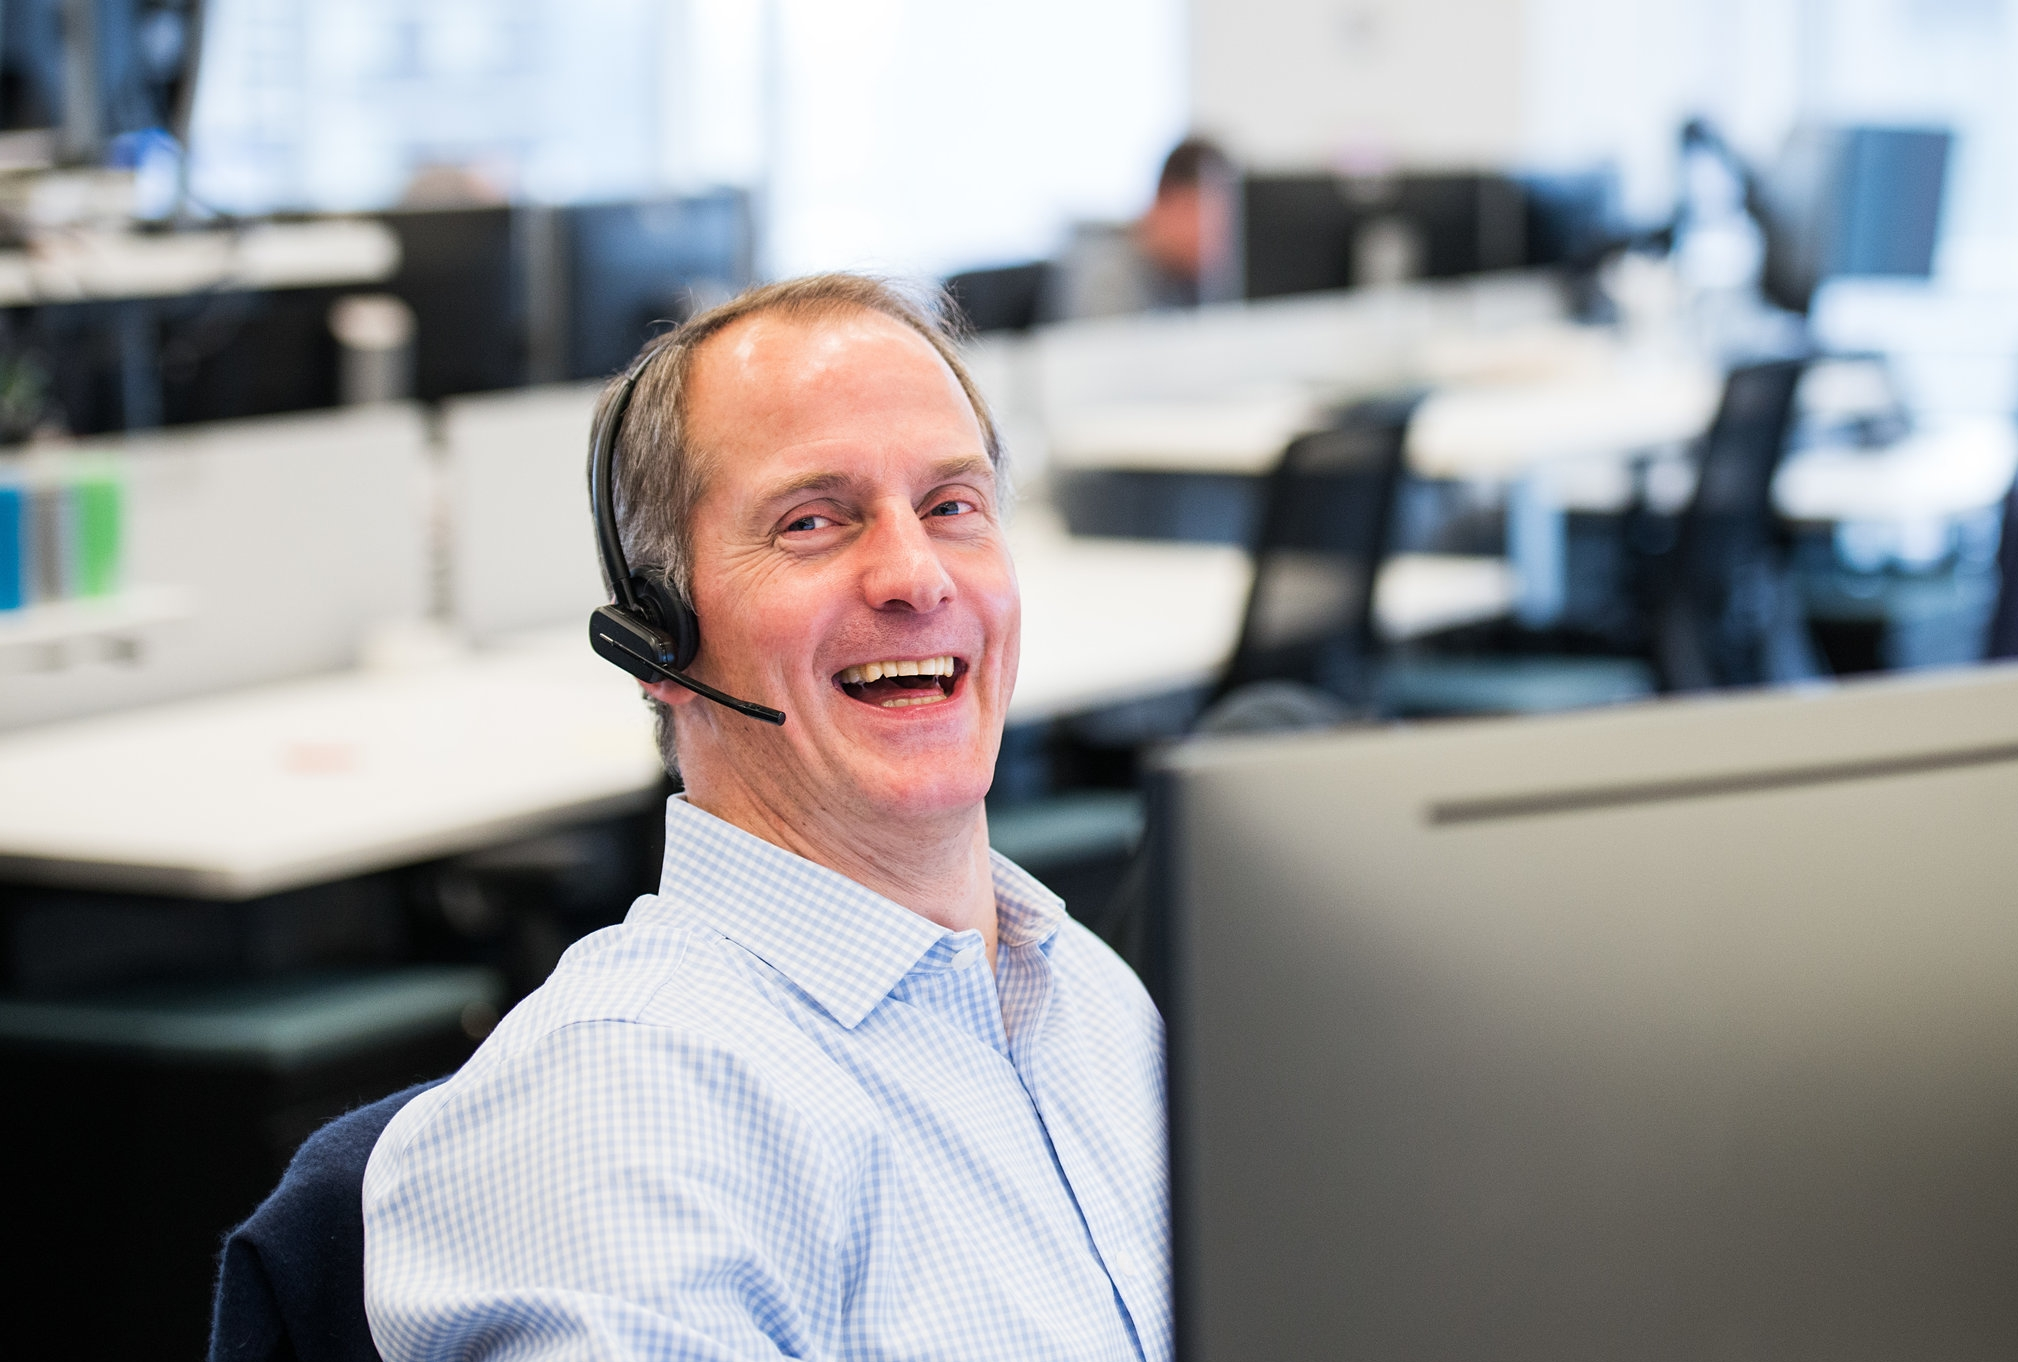 Liquidnet employee with headset smiling at workstation